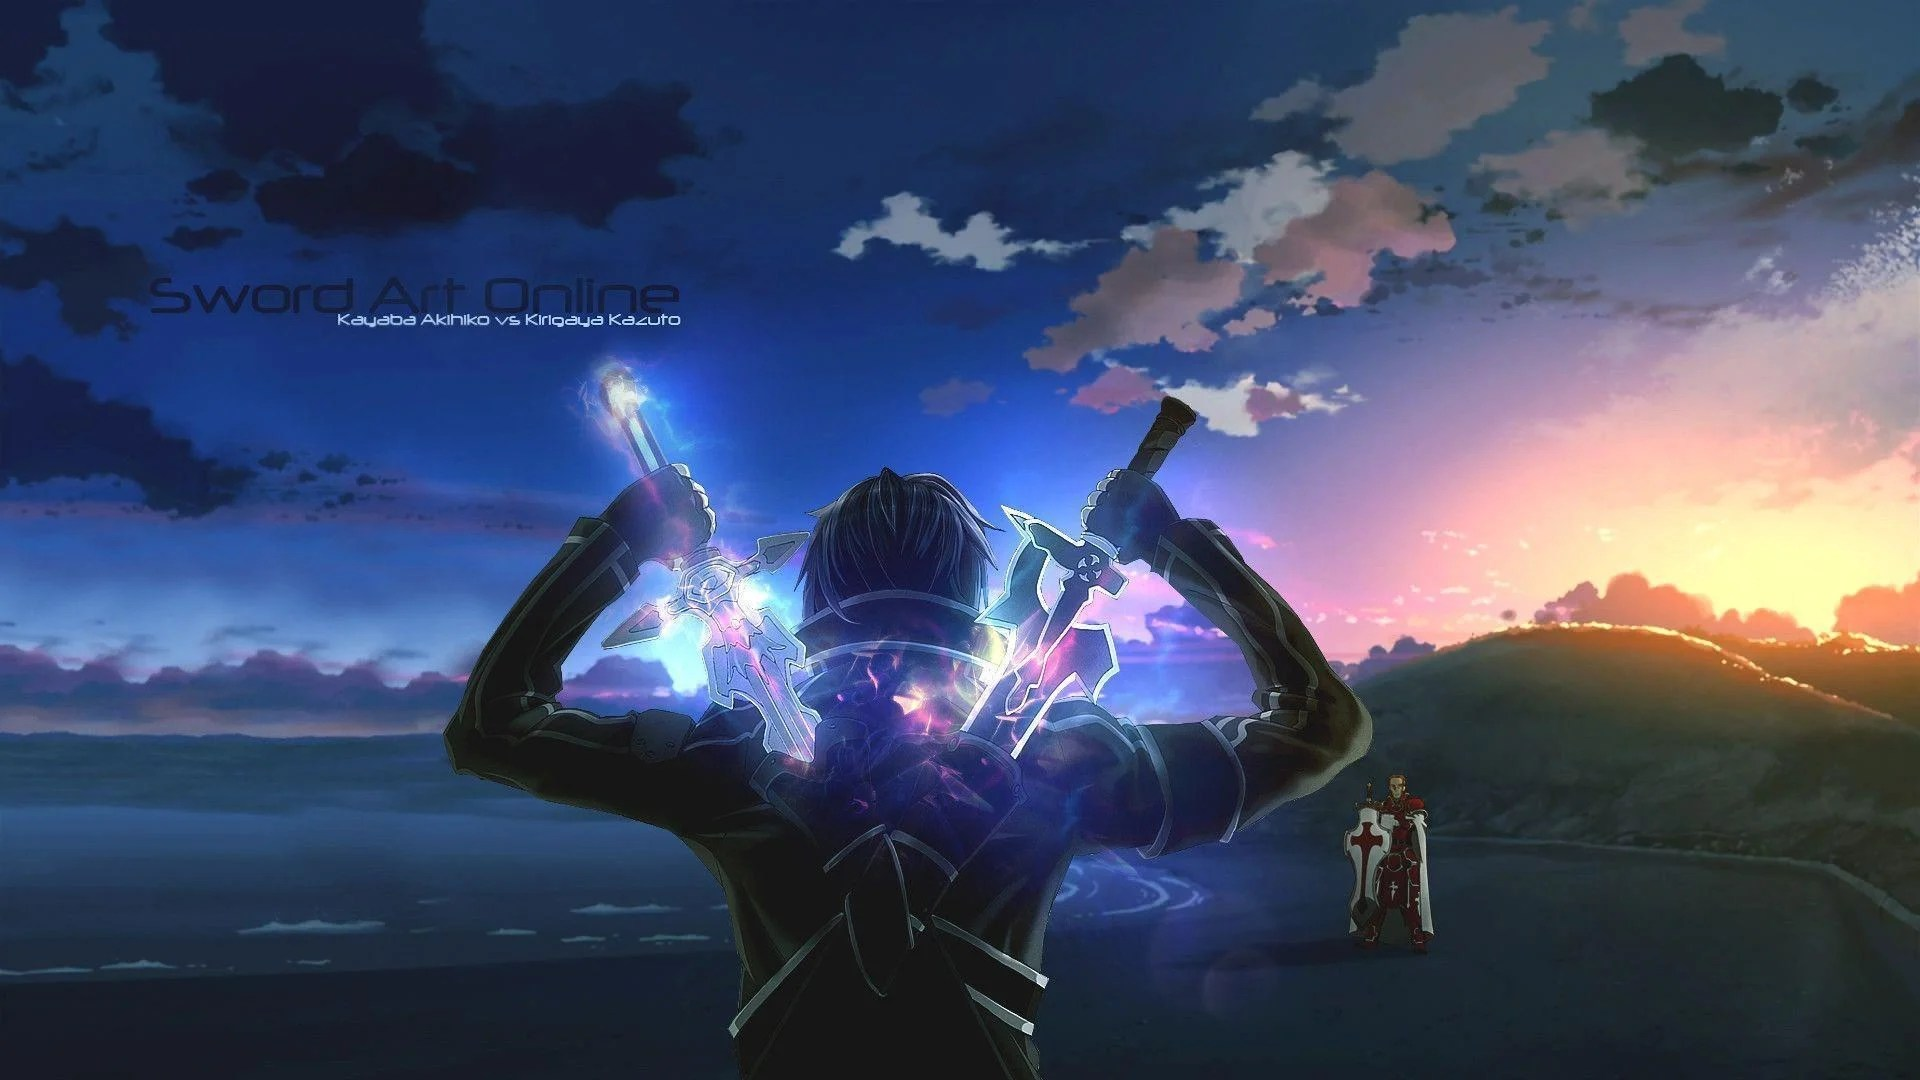 Epic Anime Wallpapers Top Free Epic Anime Backgrounds Wallpaperaccess